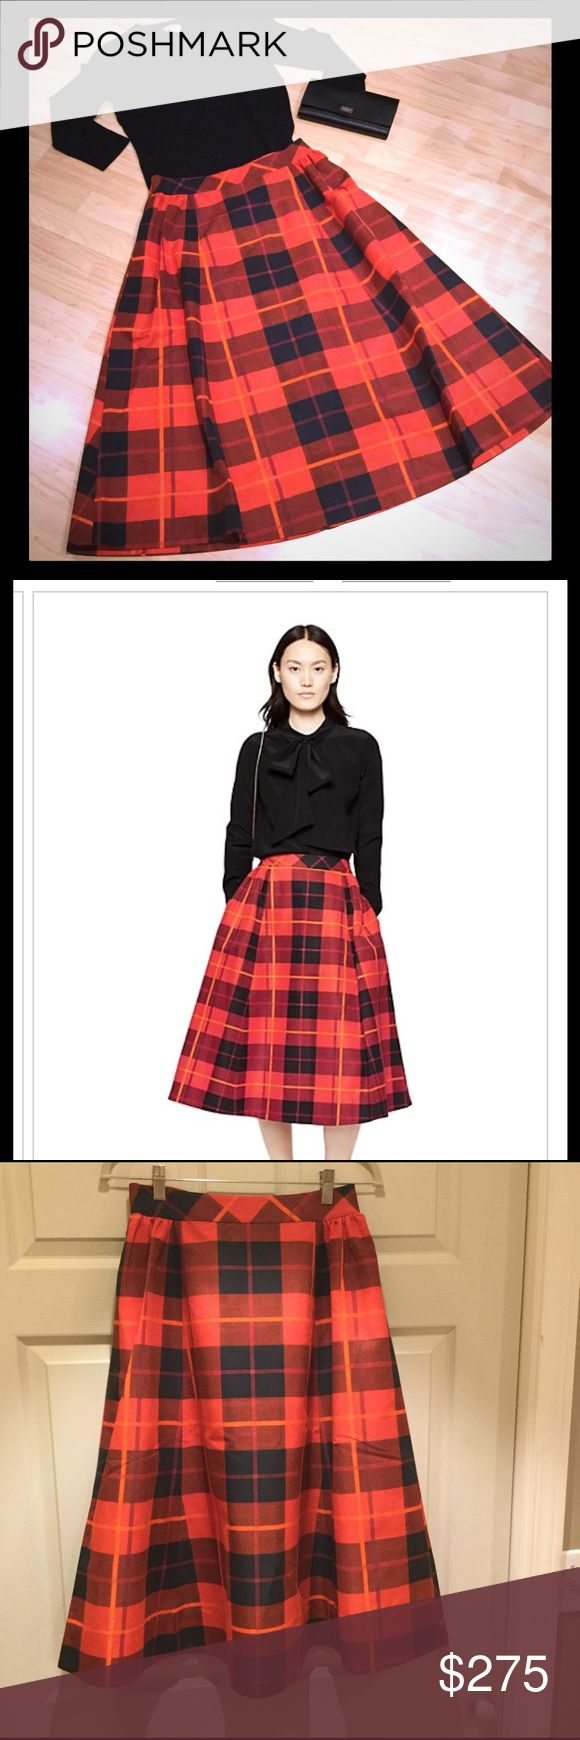 NWT Kate Spade Woodland Plaid Midi Skirt Adorable a-line midi skirt that would be perfect for the Holidays!  Side seam pockets.  Exposed bow back zipper in gold tone.  74% Cotton/ 26% Silk. kate spade Skirts Midi